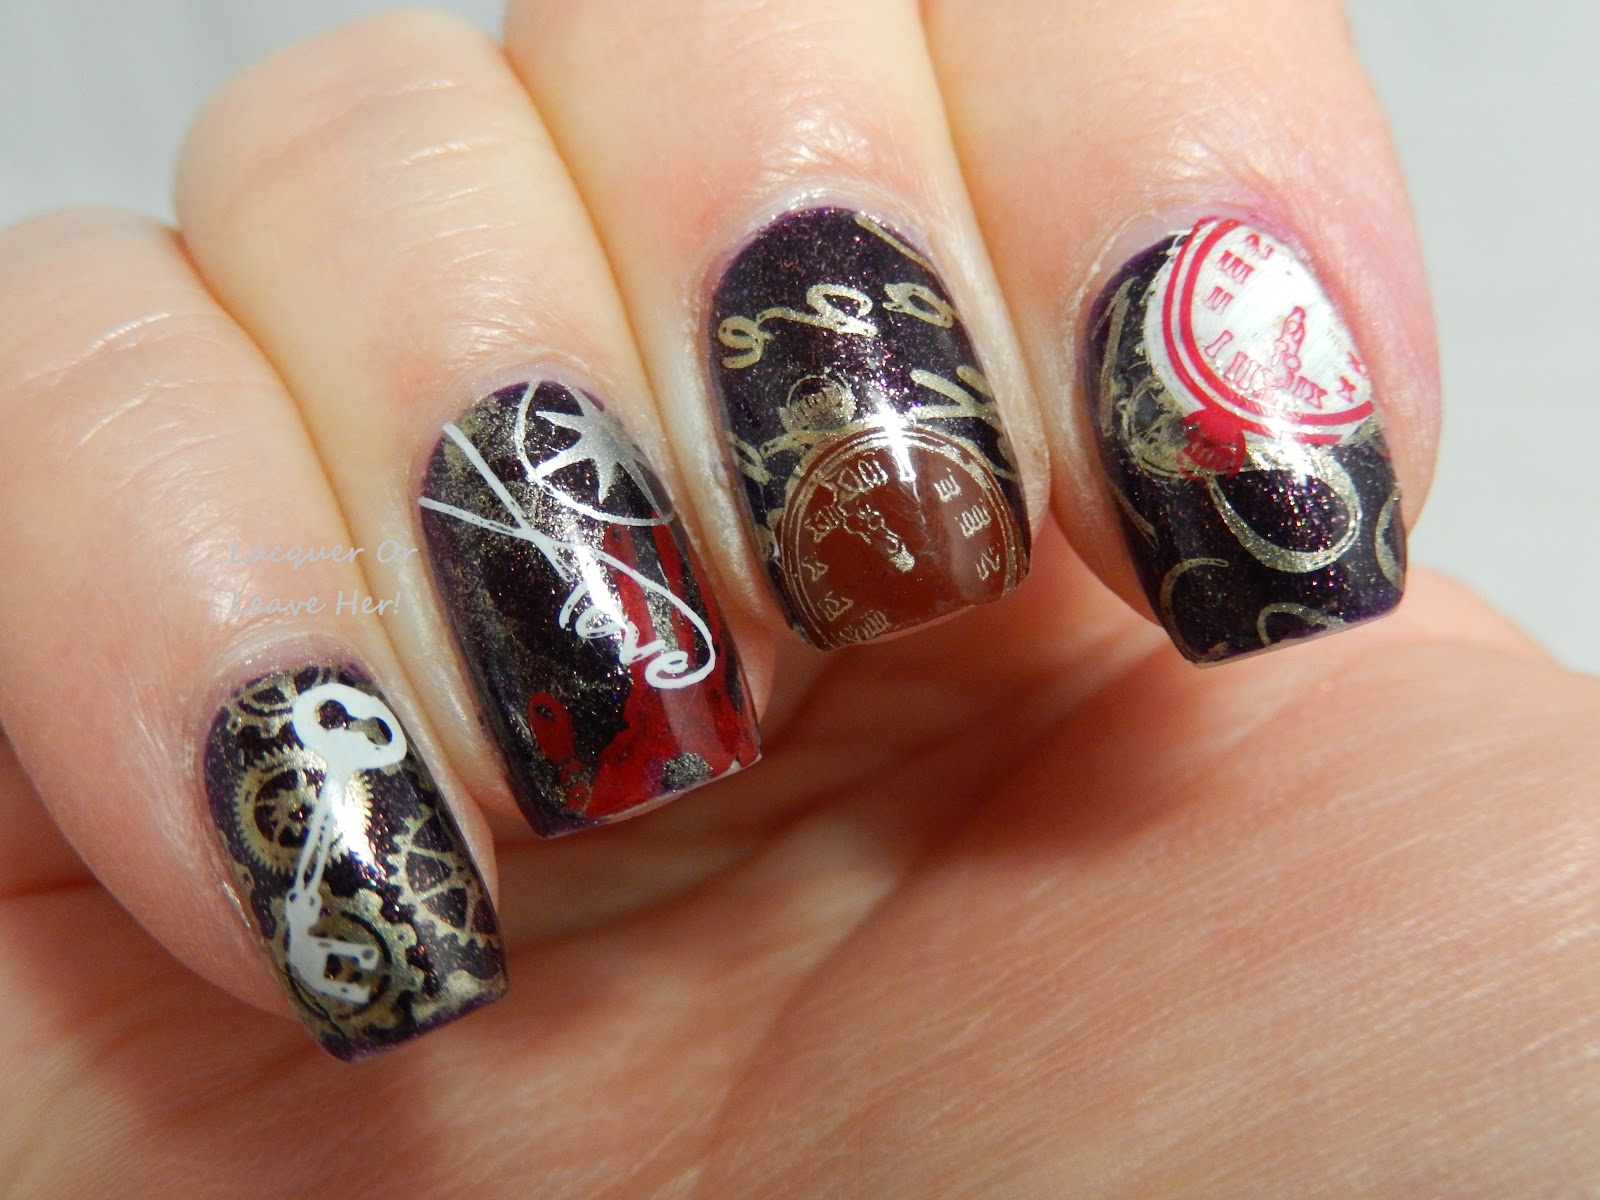 The Time Traveler's Wife manicure somewhat improved